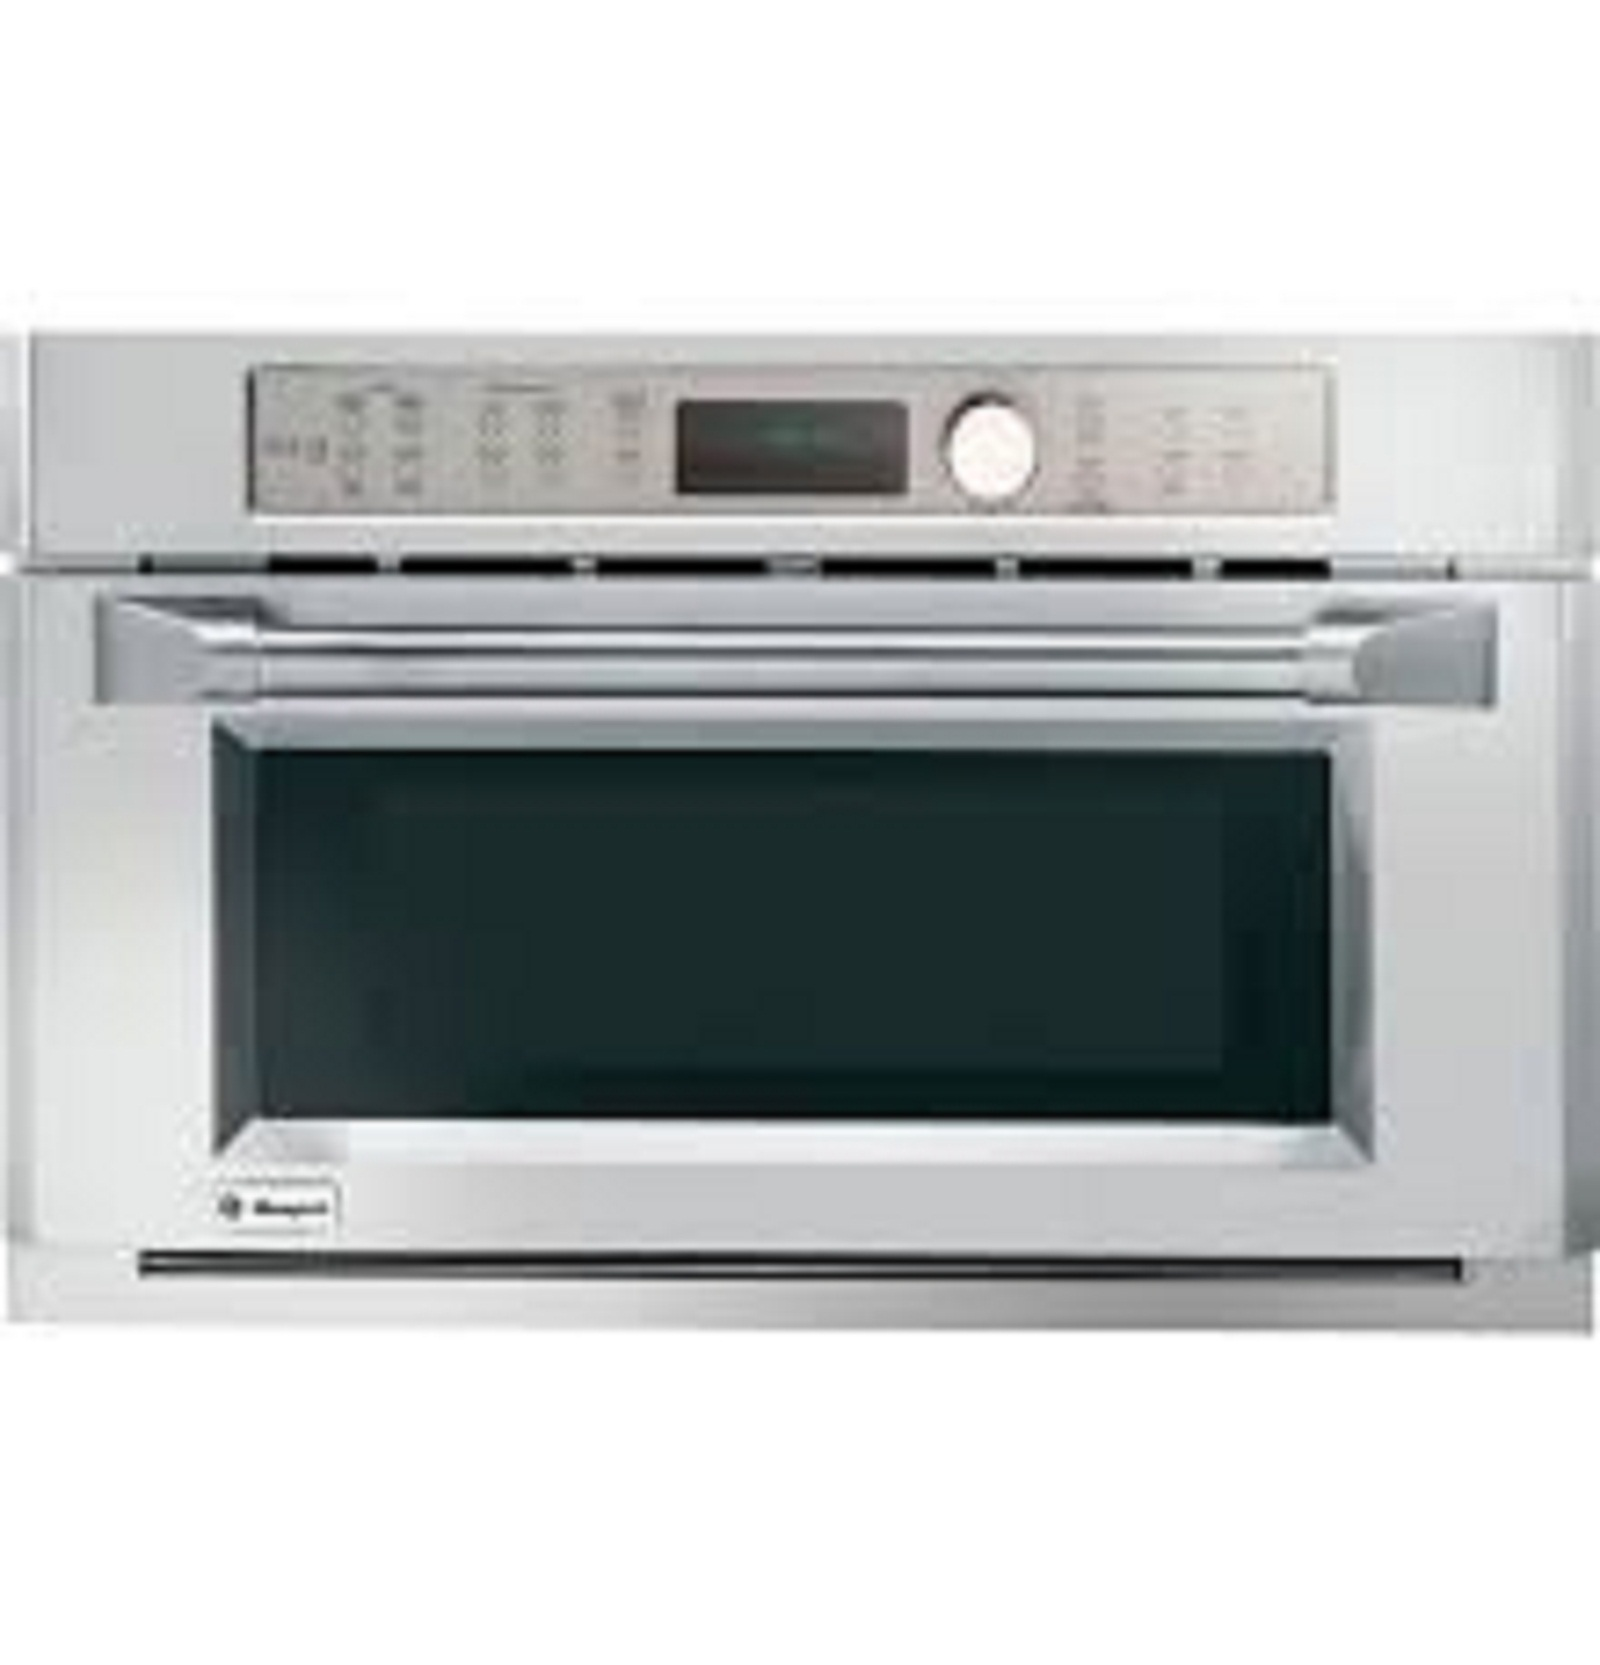 Monogram-Built-In-Electric-Oven-with-Advantium%C2%AE-Speedcook-Technology-120V